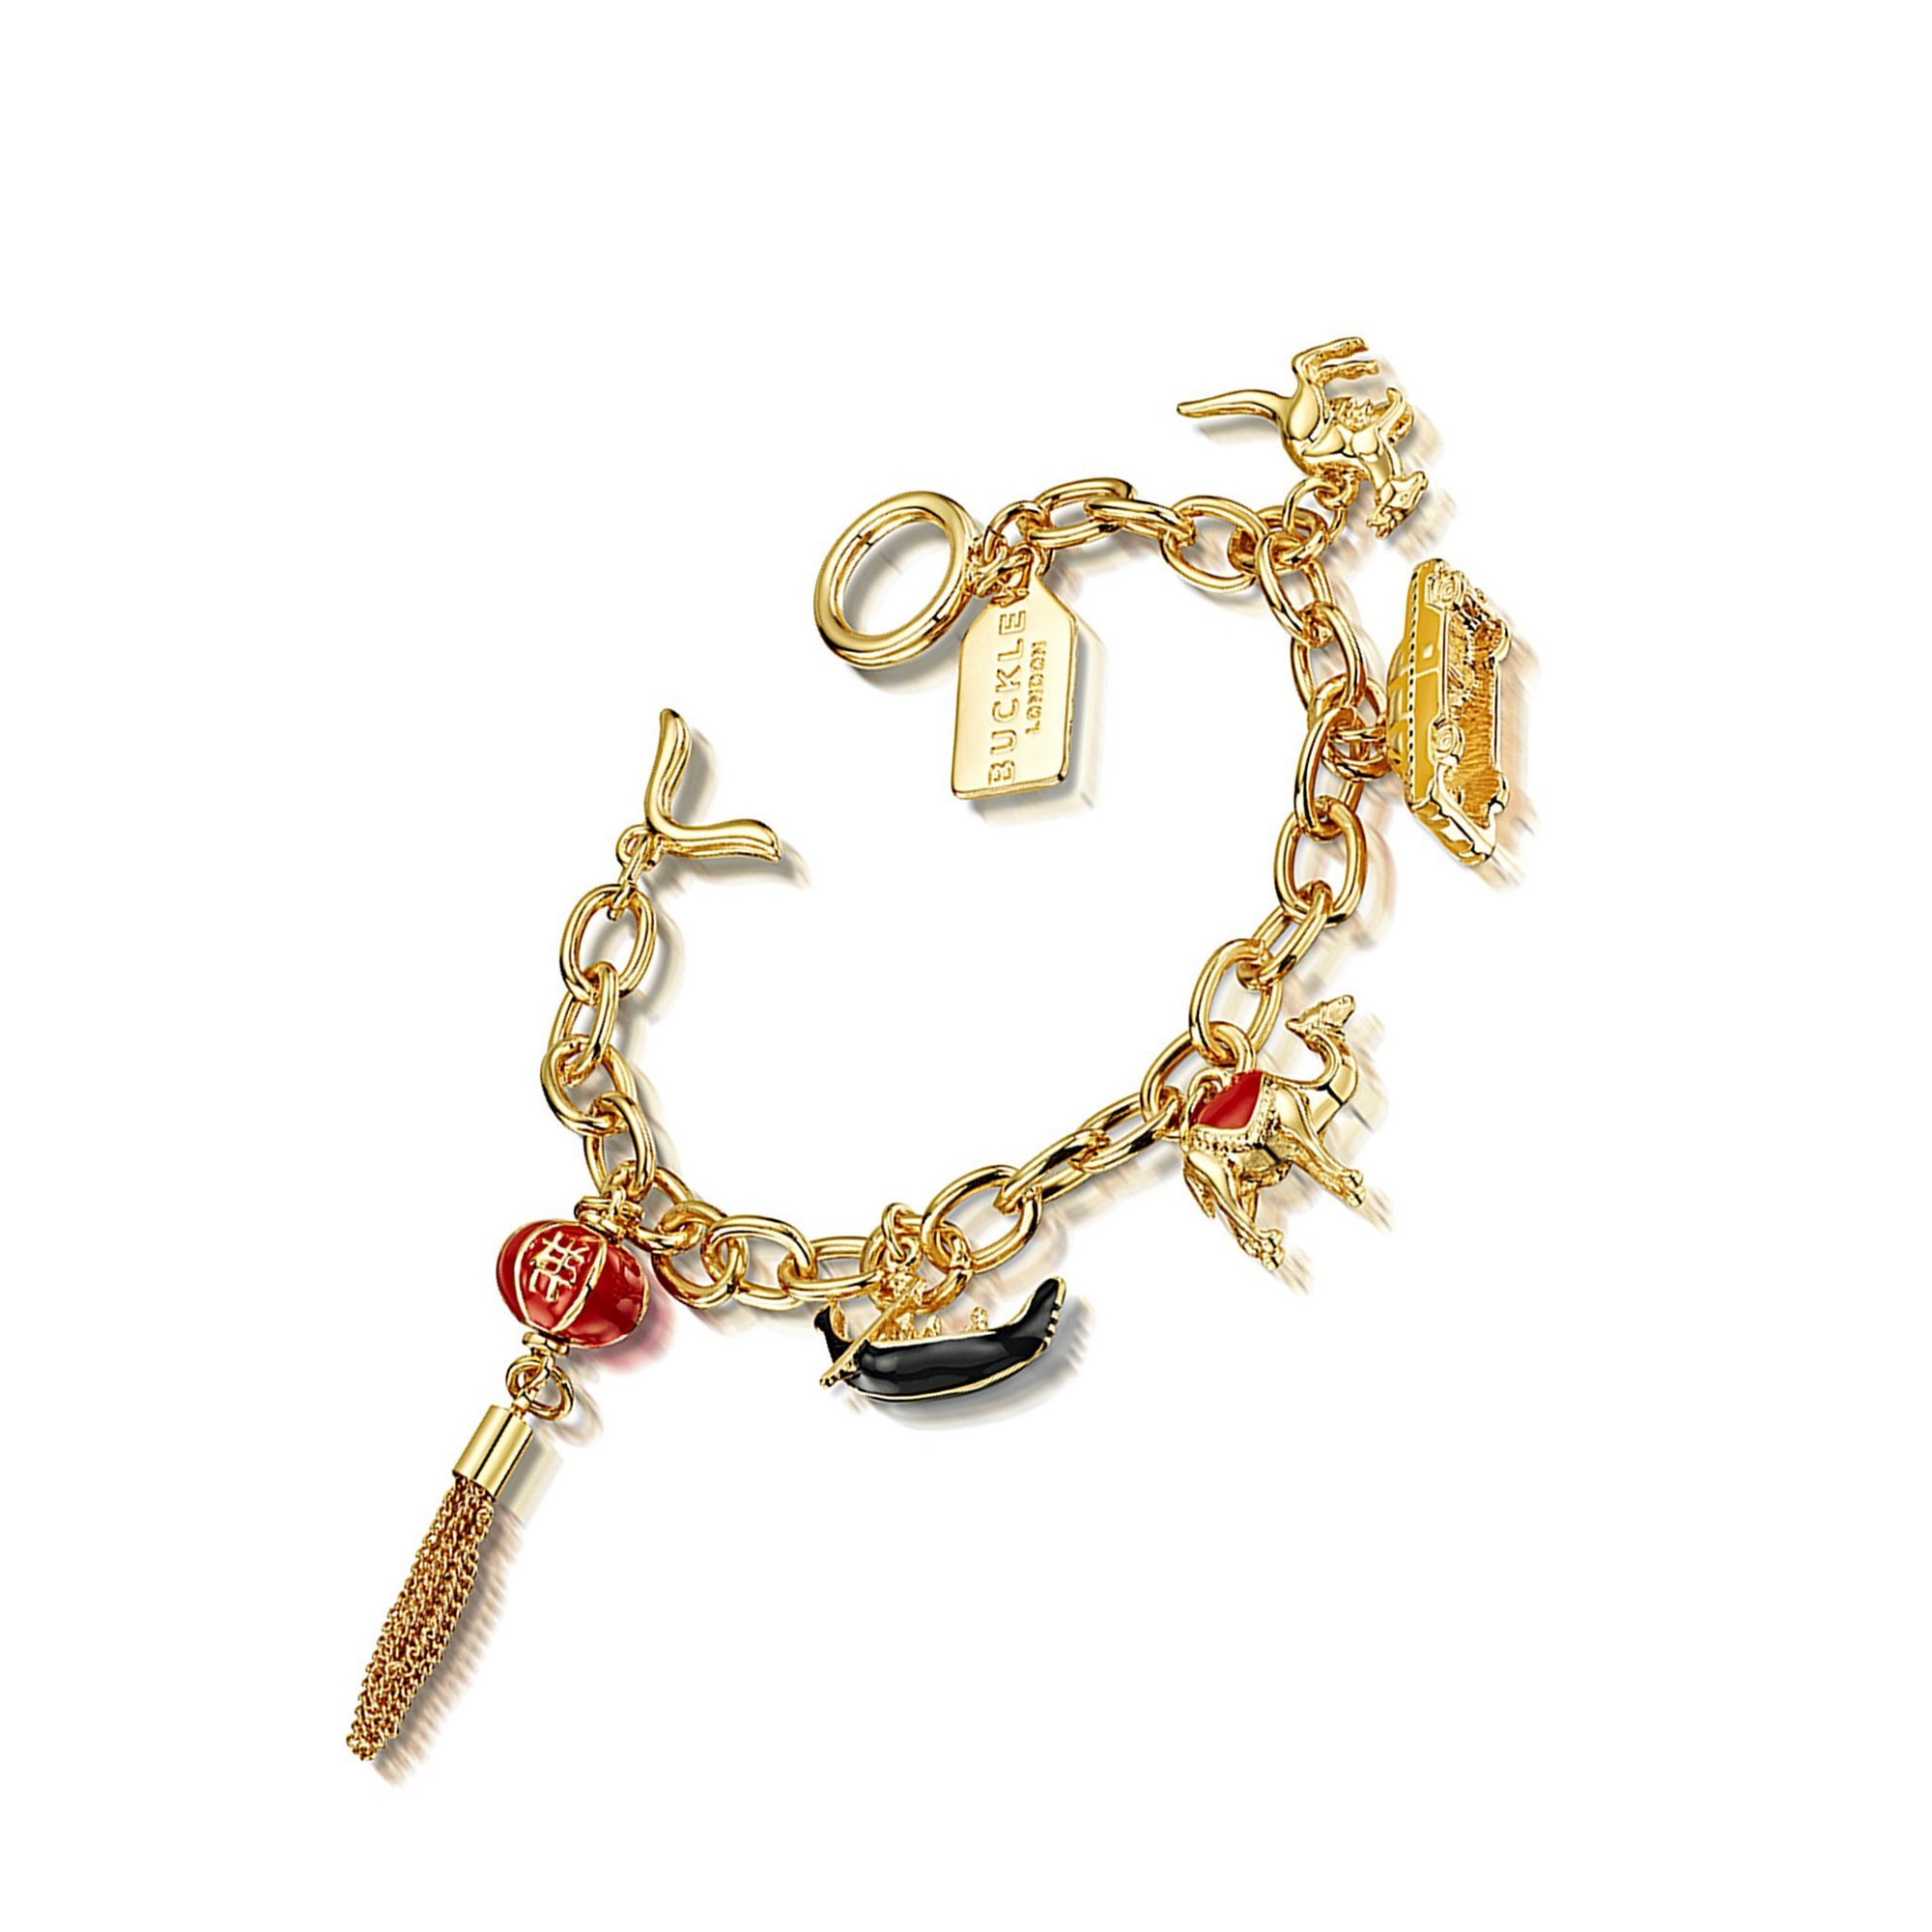 Image of Buckley London Around the World Charm Bracelet